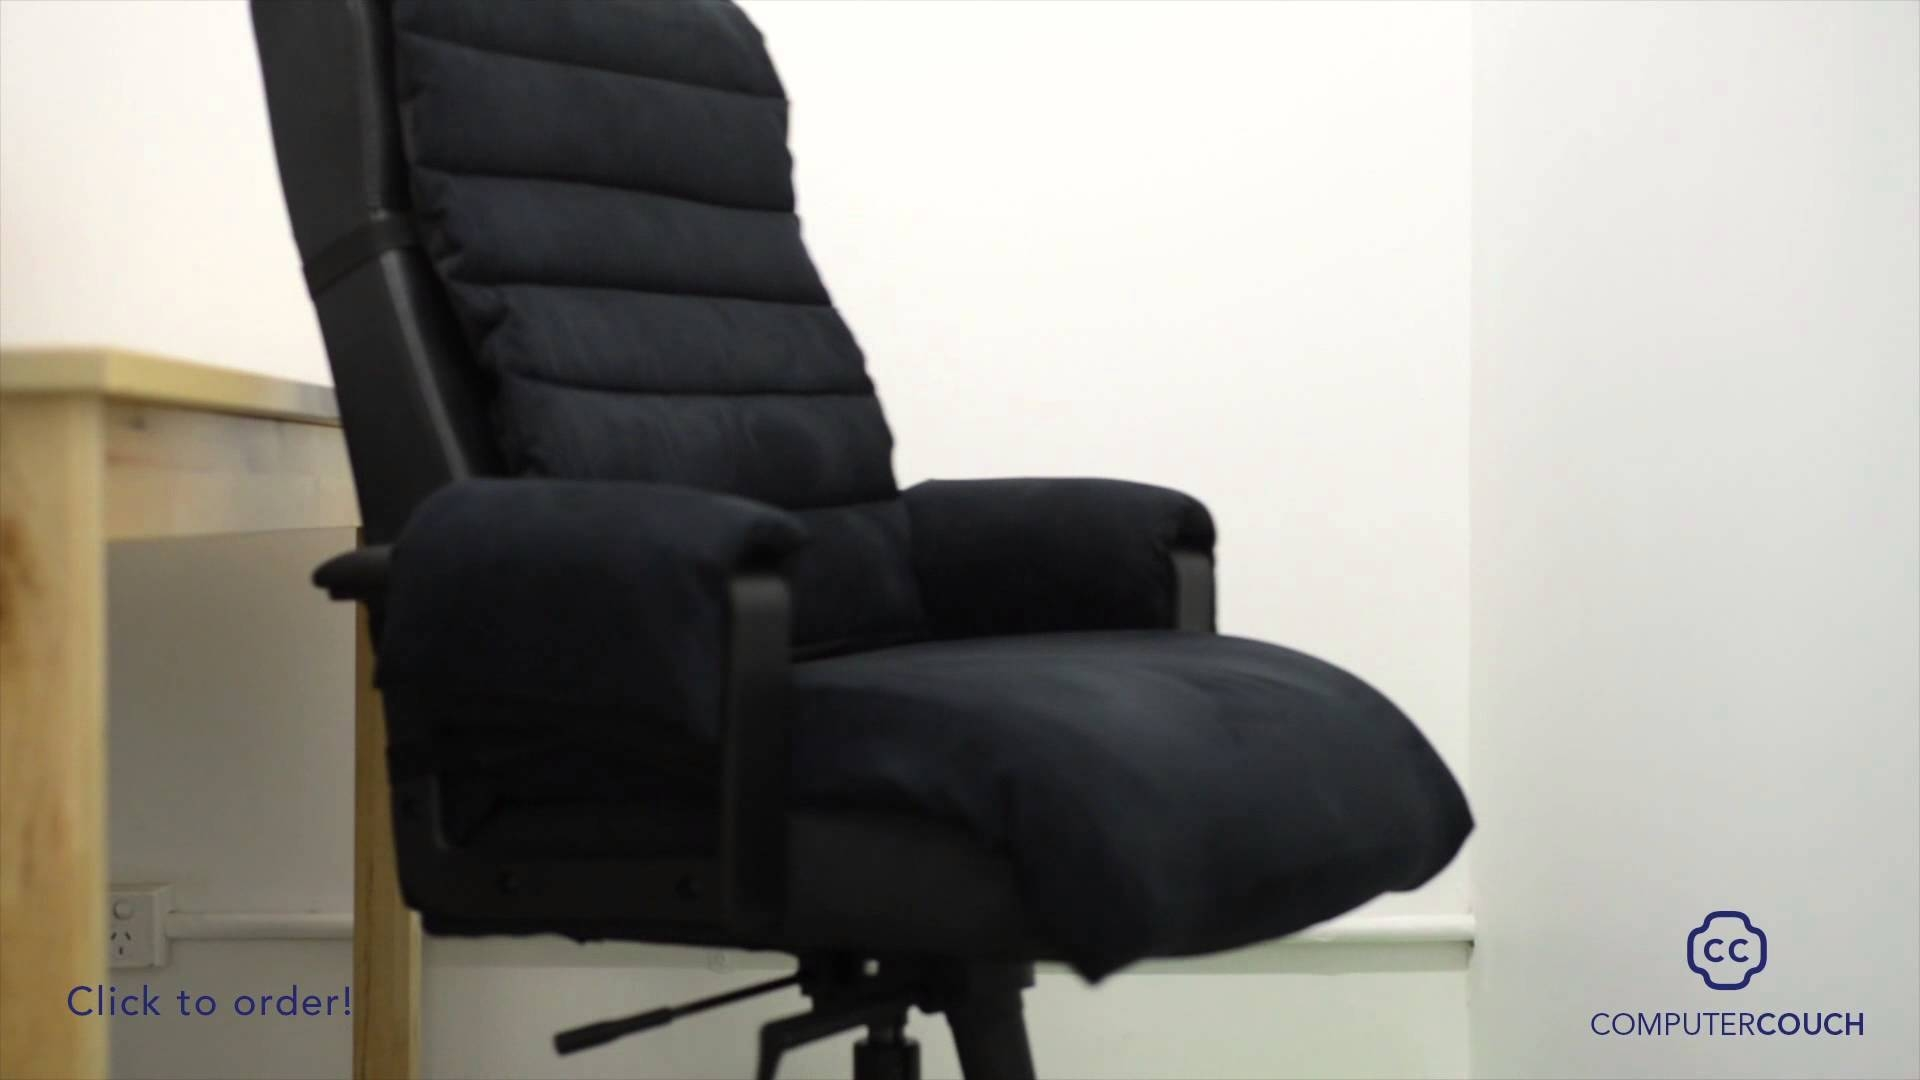 Office Sofa Chair 39 Ideas About Office Sofa Chair – Cryomats Intended For Office Sofas And Chairs (View 9 of 15)